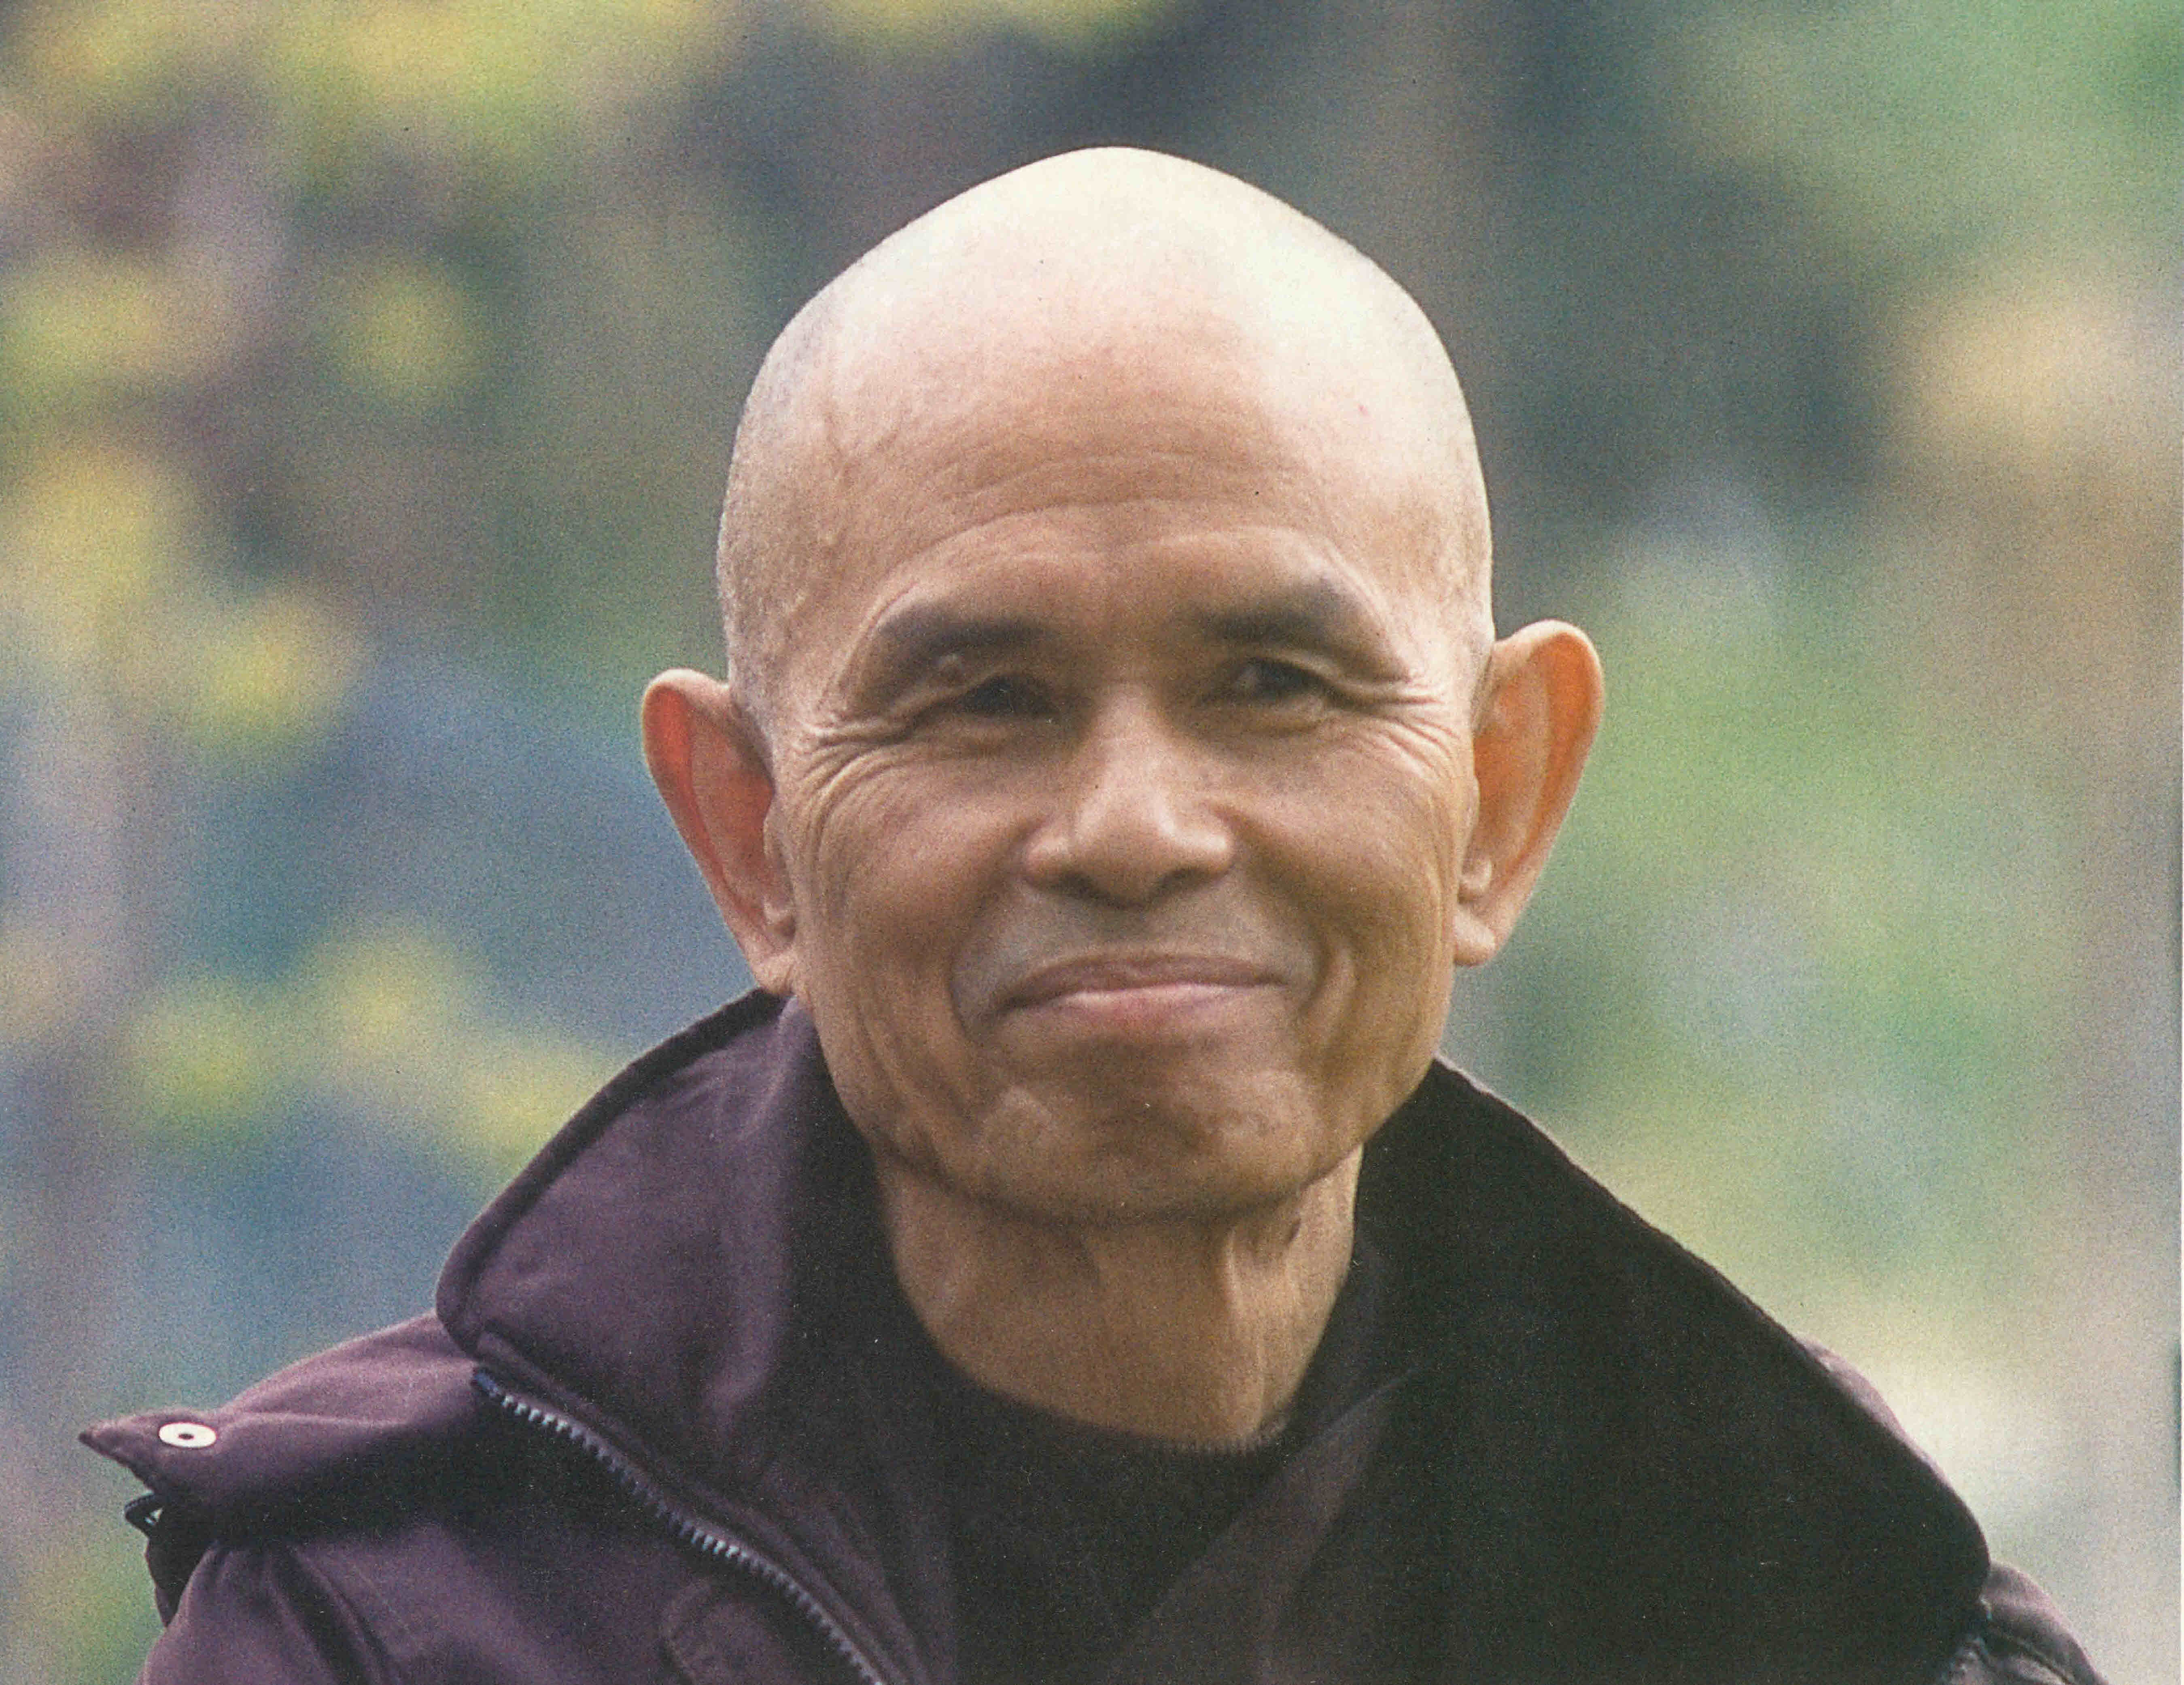 tich nhat han essays Mindful eating: buddhist master thich nhat hanh discusses mindful eating and how practicing it can improve your peace of mind.